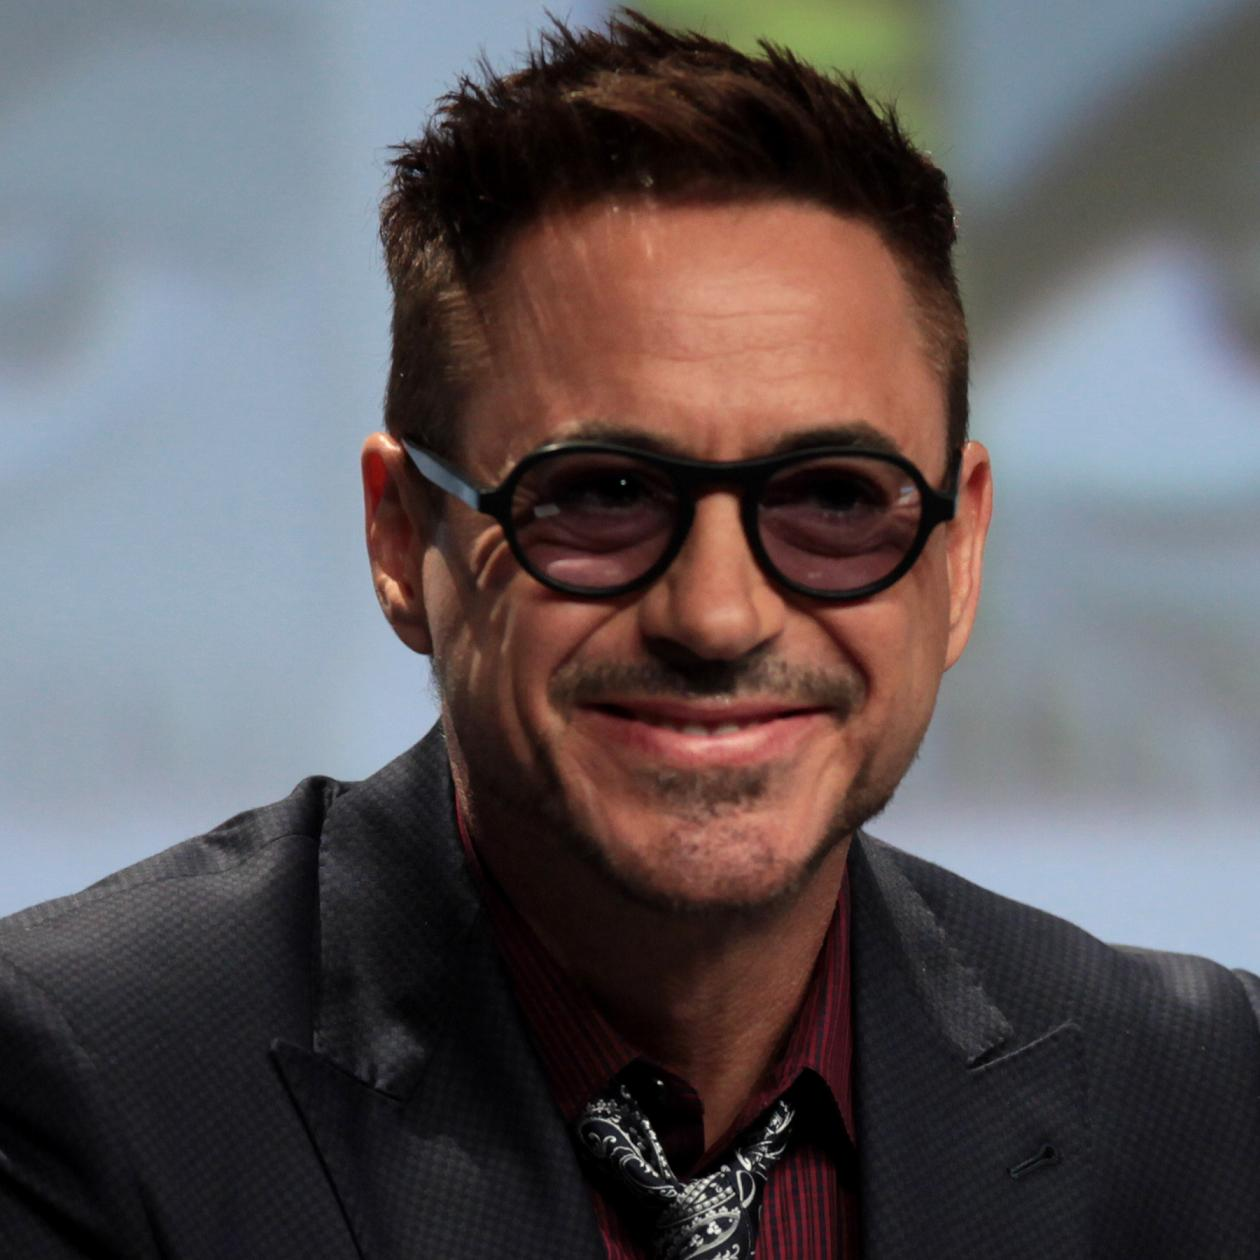 Robert Downey Jr. Bio, Net Worth, Facts